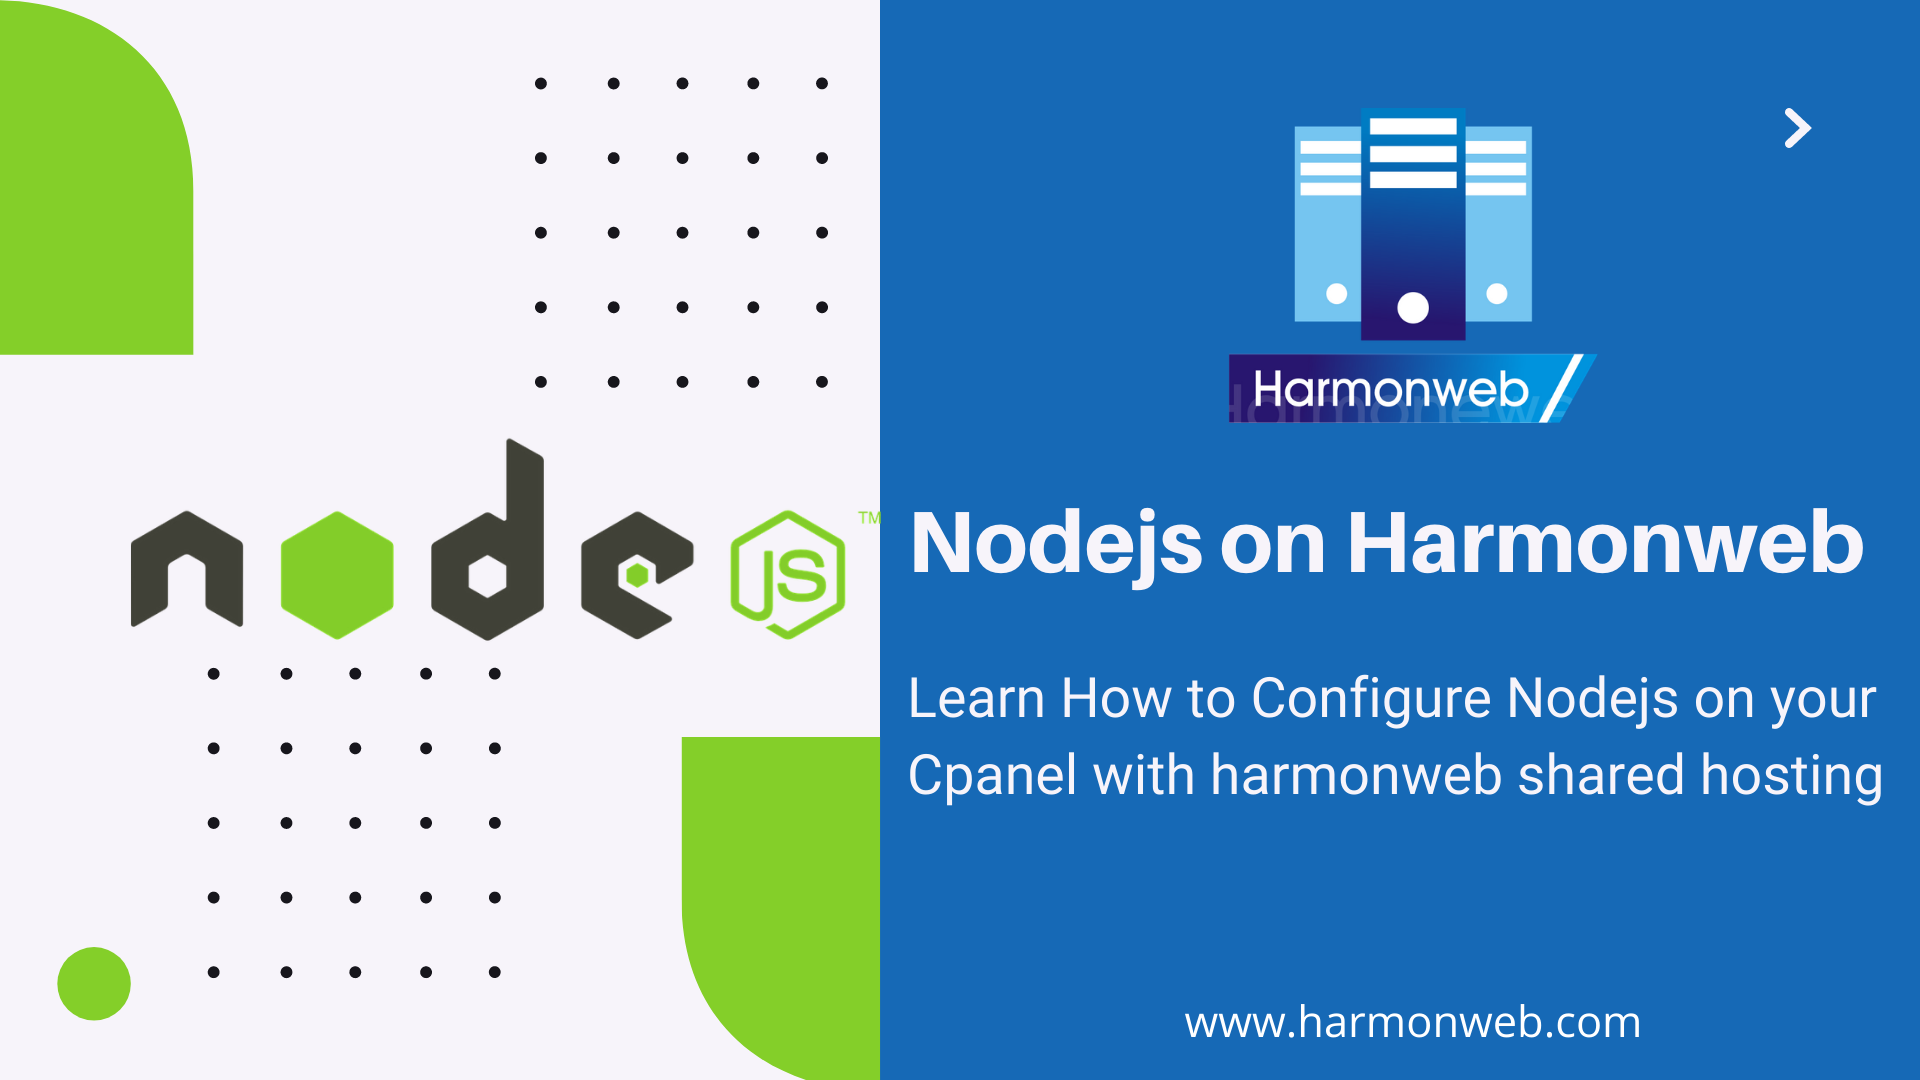 Setting up Nodejs on Harmonweb Shared hosting